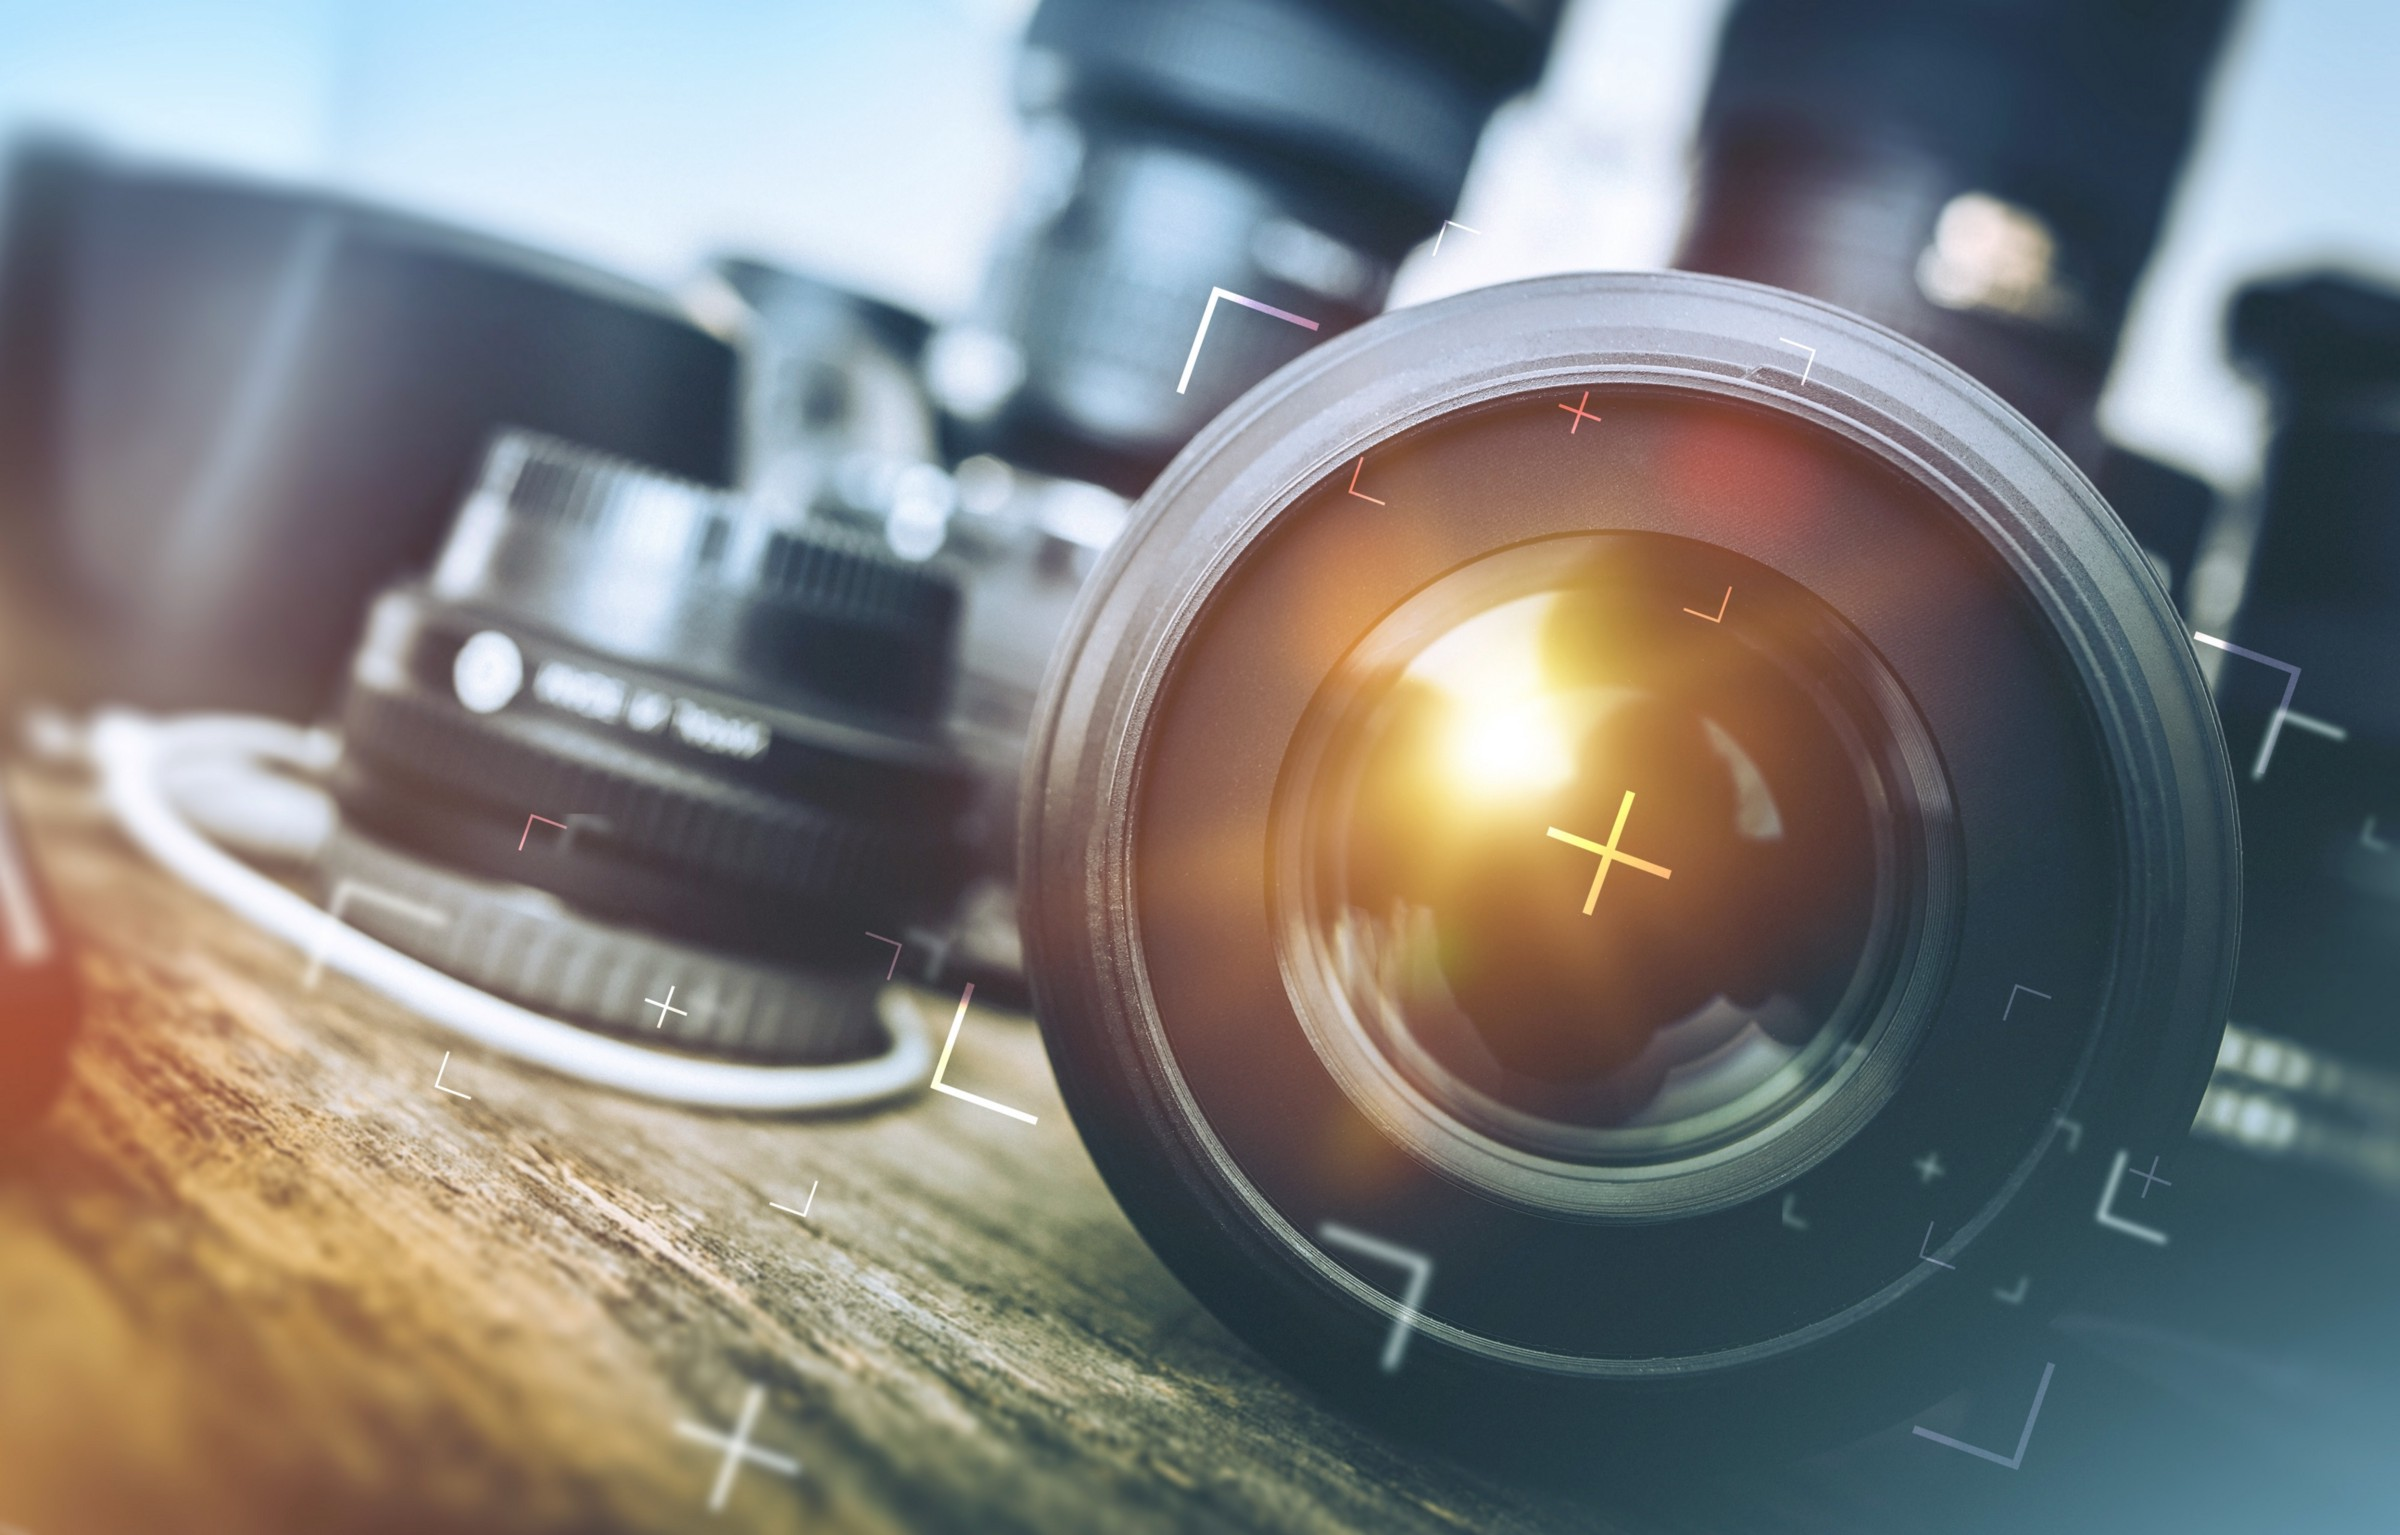 2c2c2f9d047 Everything you need to know about camera lenses – Haje Jan Kamps – Medium